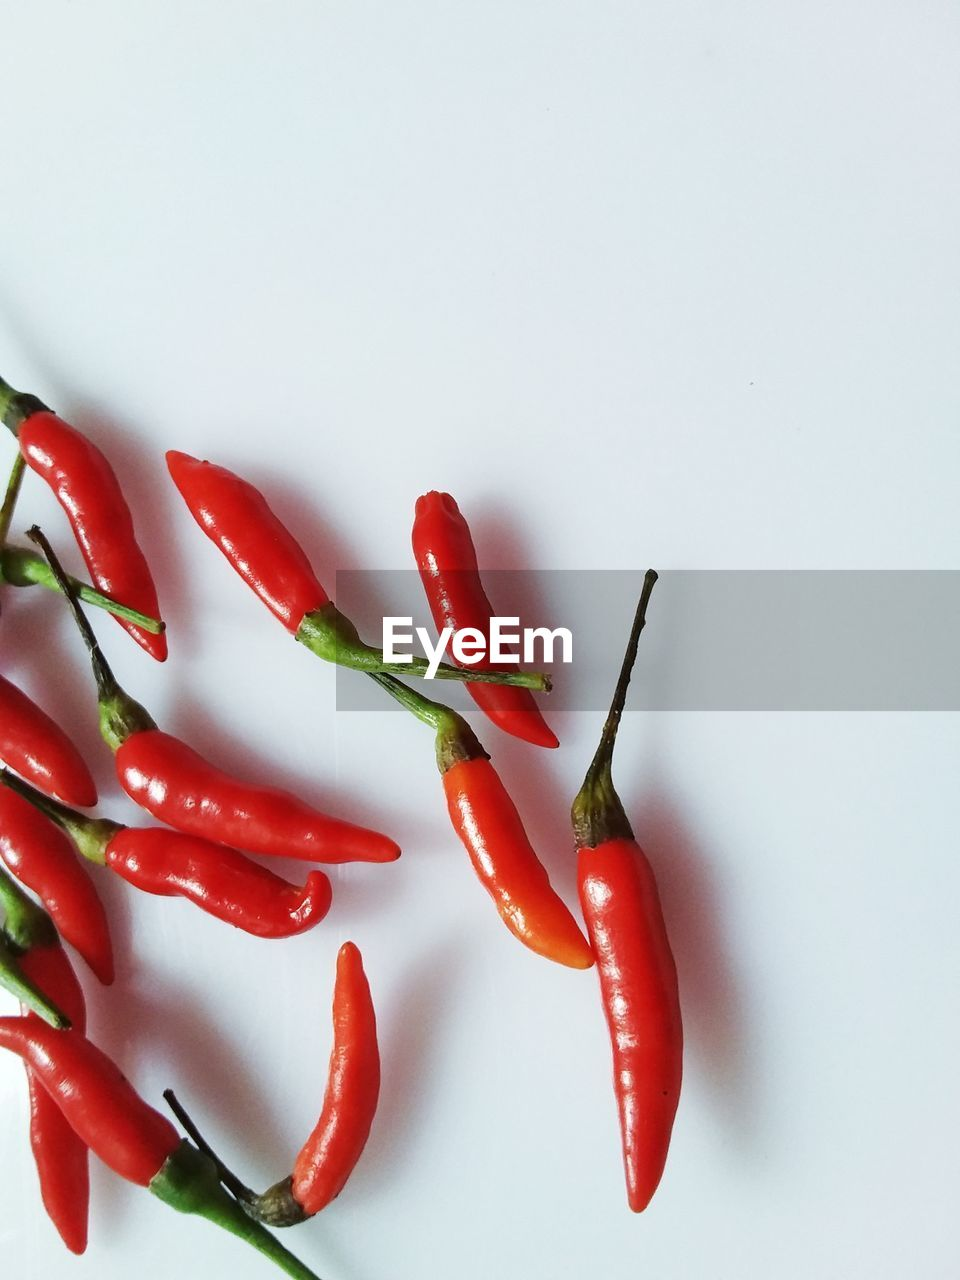 red, red chili pepper, chili pepper, pepper, studio shot, food and drink, white background, spice, freshness, food, vegetable, still life, indoors, close-up, no people, wellbeing, copy space, healthy eating, chili, ingredient